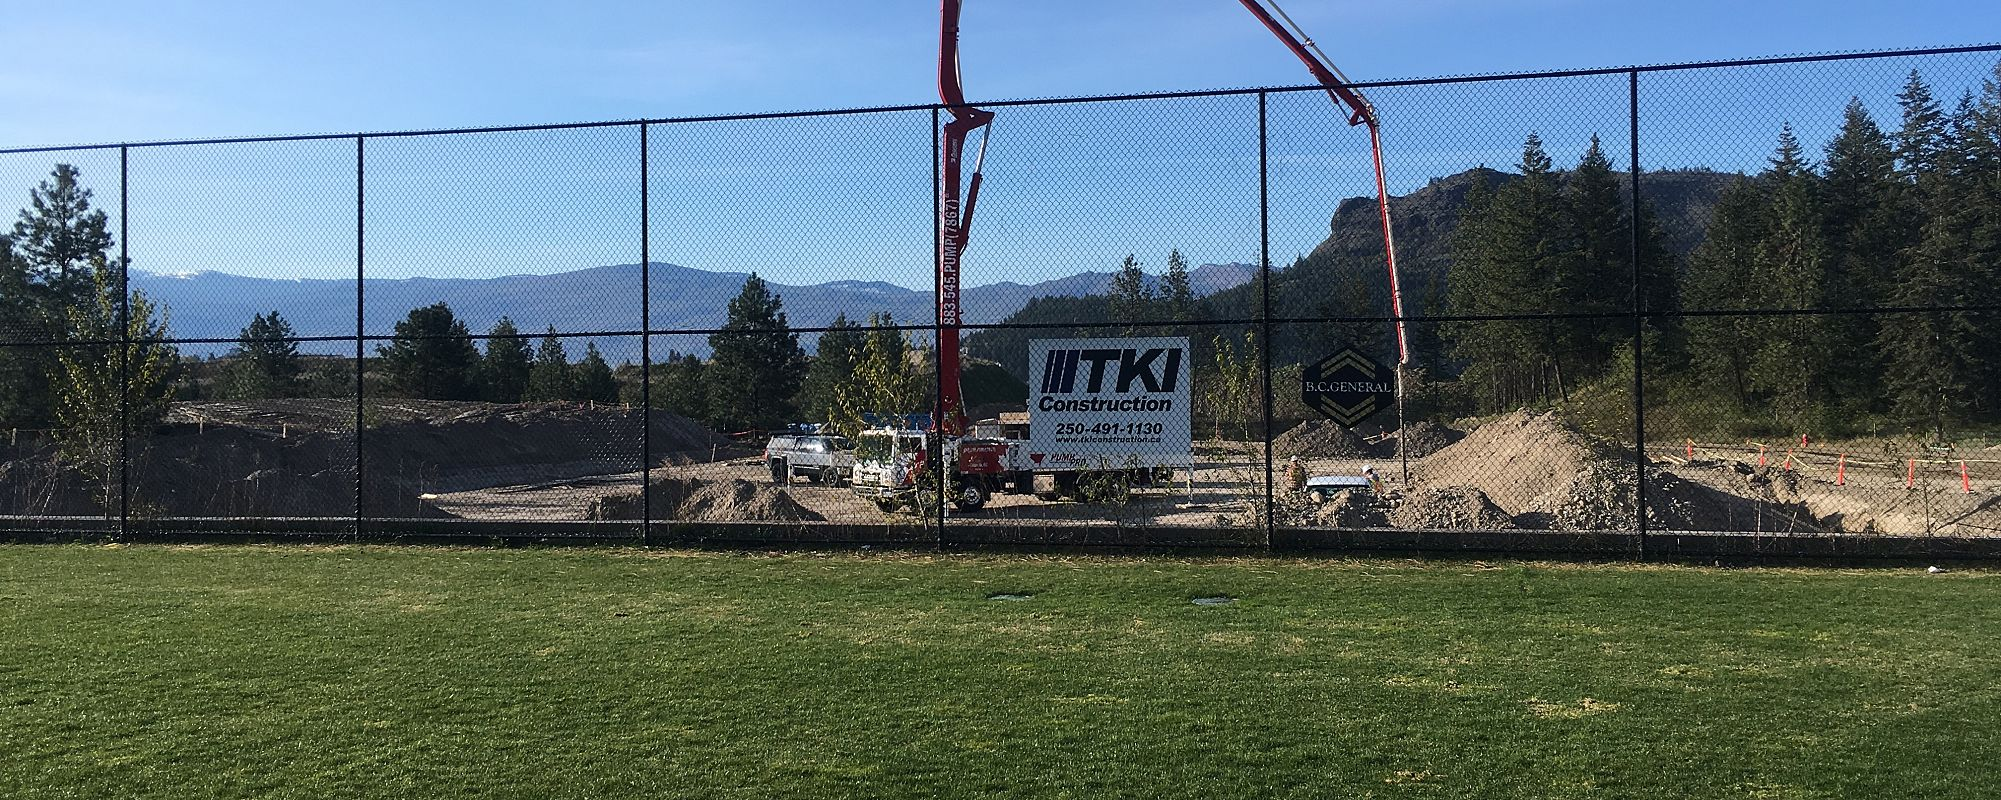 TKI Has Been Awarded the West Kelowna Multisports Dome